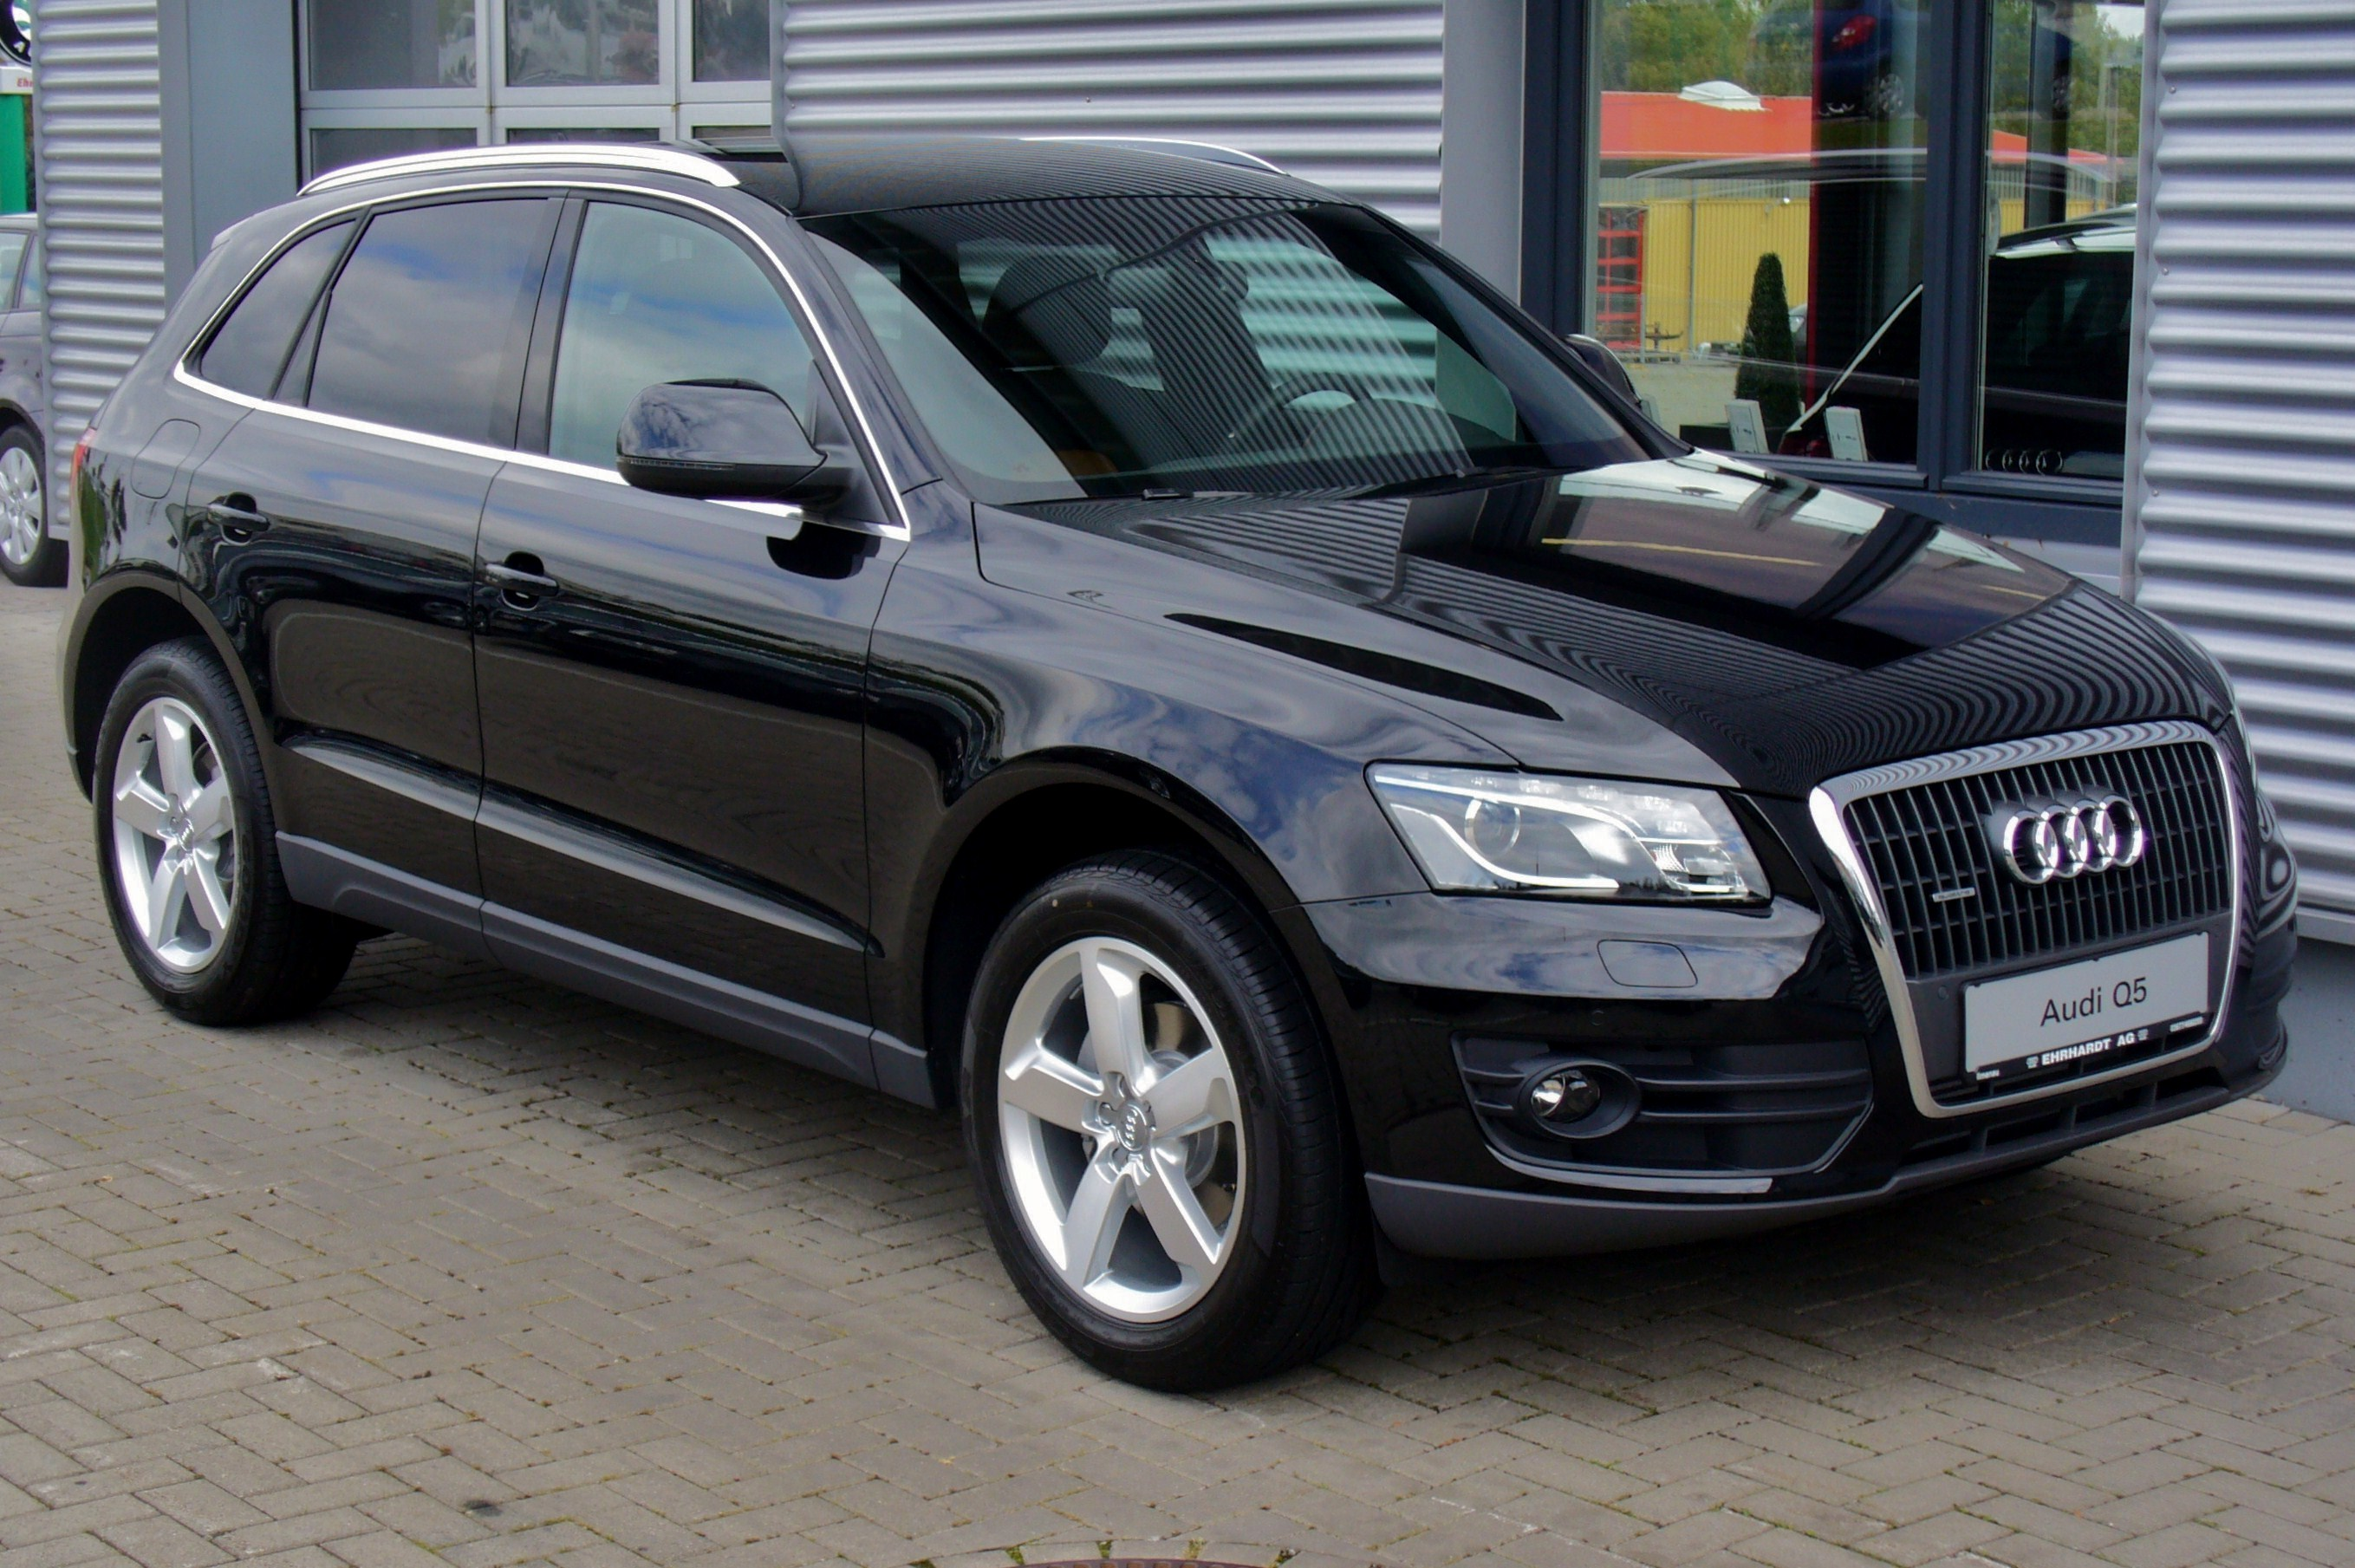 file audi q5 2 0 tdi quattro s tronic 30 jahre quattro phantomschwarz jpg wikimedia commons. Black Bedroom Furniture Sets. Home Design Ideas